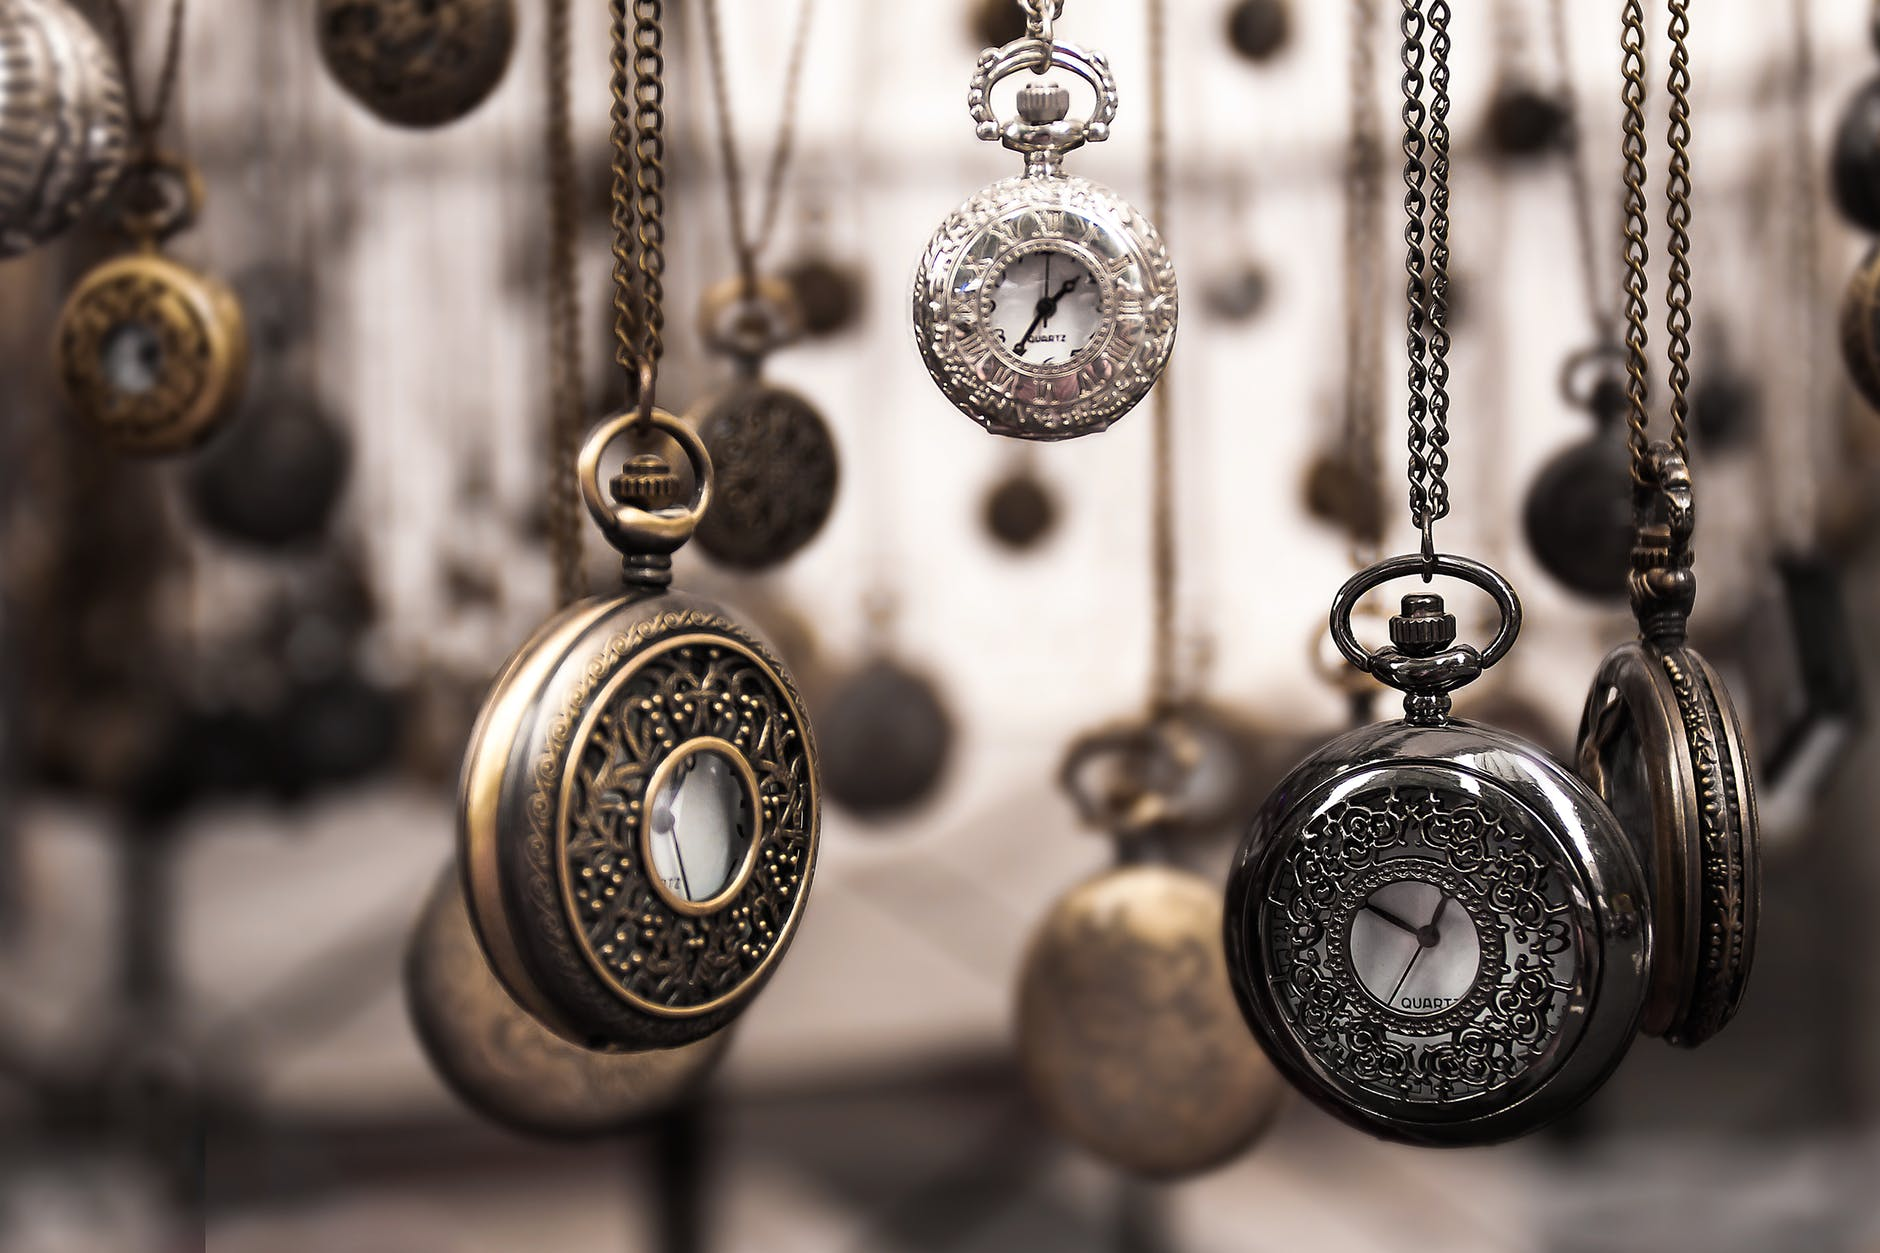 A lot of pocket watches, which you should treat with care if you want to store collectable items.